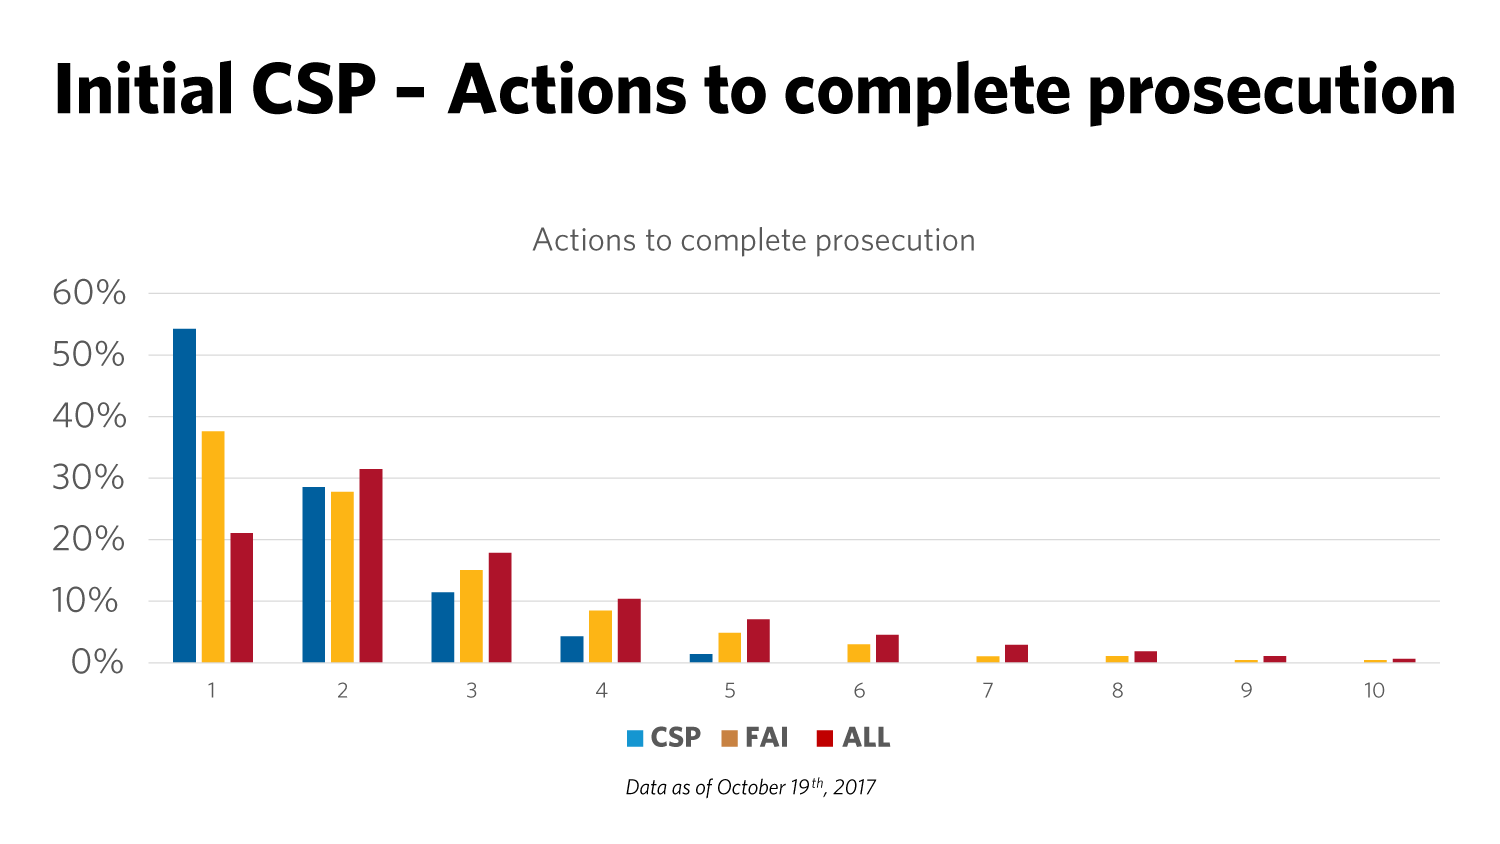 Bar chart showing the number of examiner actions necessary to complete prosecution for the initial CSP, FAI, and all applications. Well over 50% of the initial CSP applications completed prosecution in a single action. This is true for less than 40% of FAI applications and just over 20% of all applications. Data as of October 19, 2017.